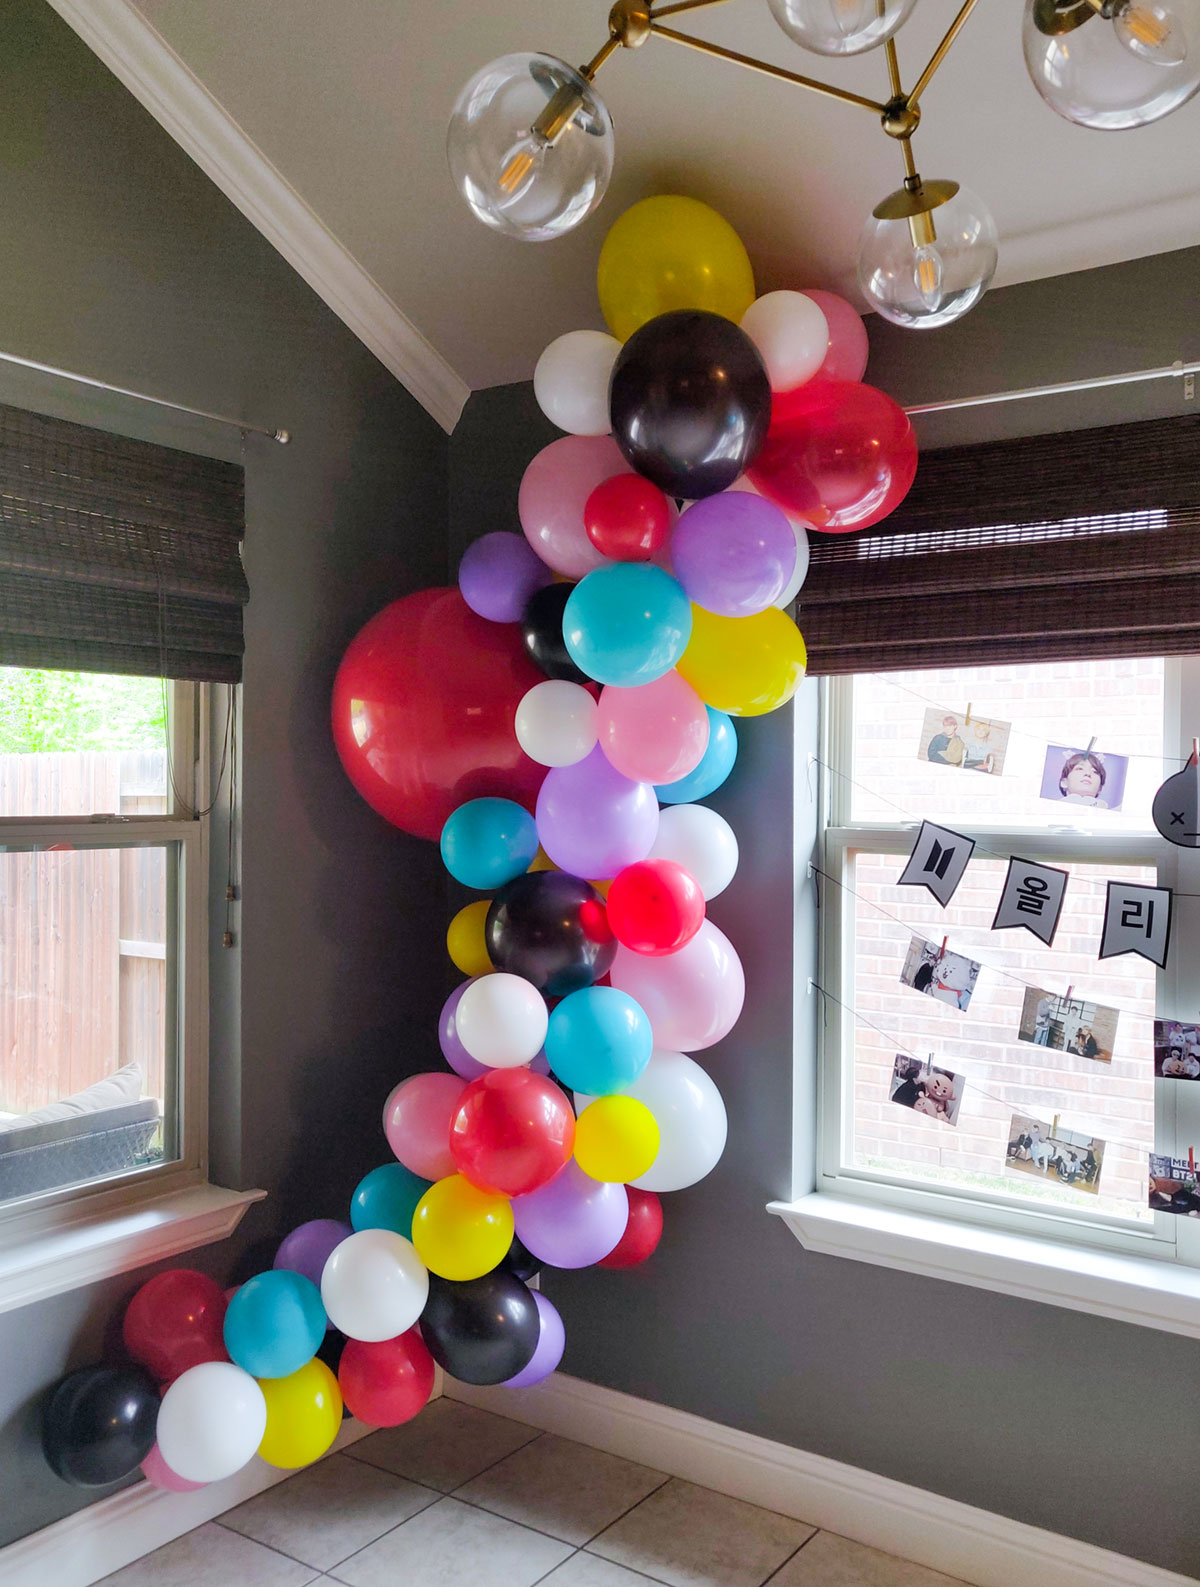 Artfuldays diy balloon garland bt21